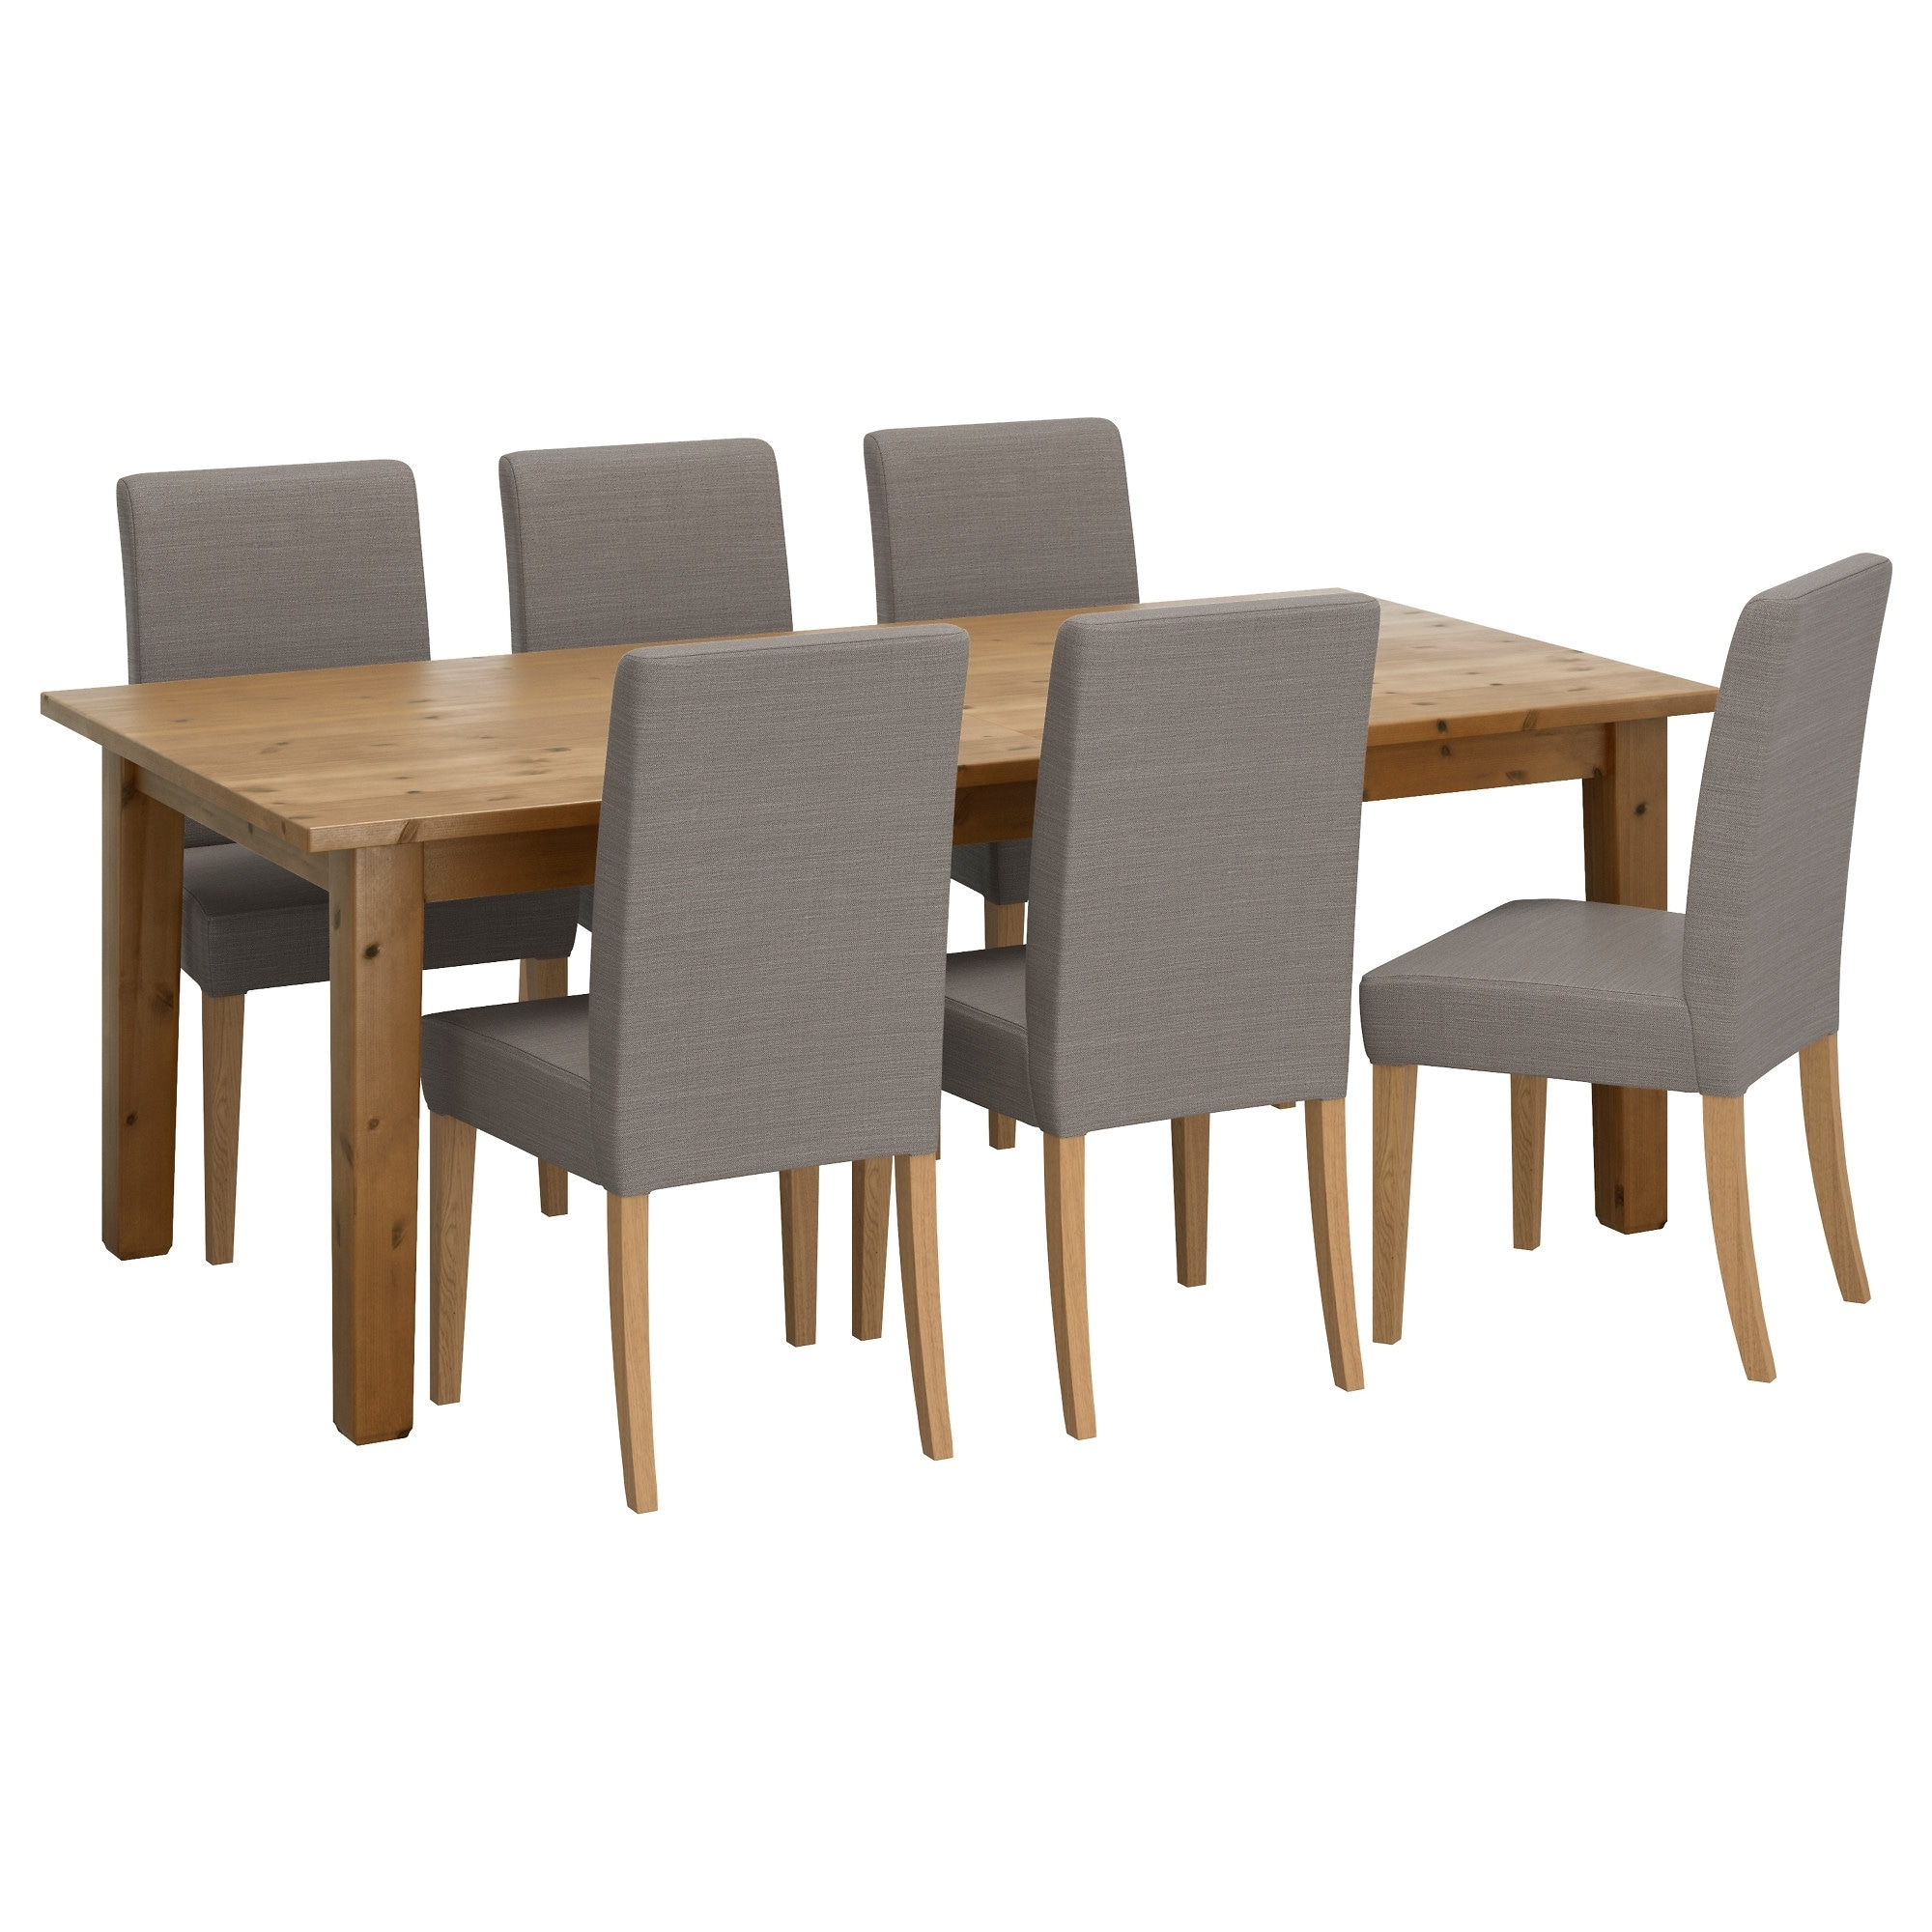 Most Up To Date 6 Seat Dining Table Sets With Regard To 6 Seater Dining Table & Chairs (View 23 of 25)